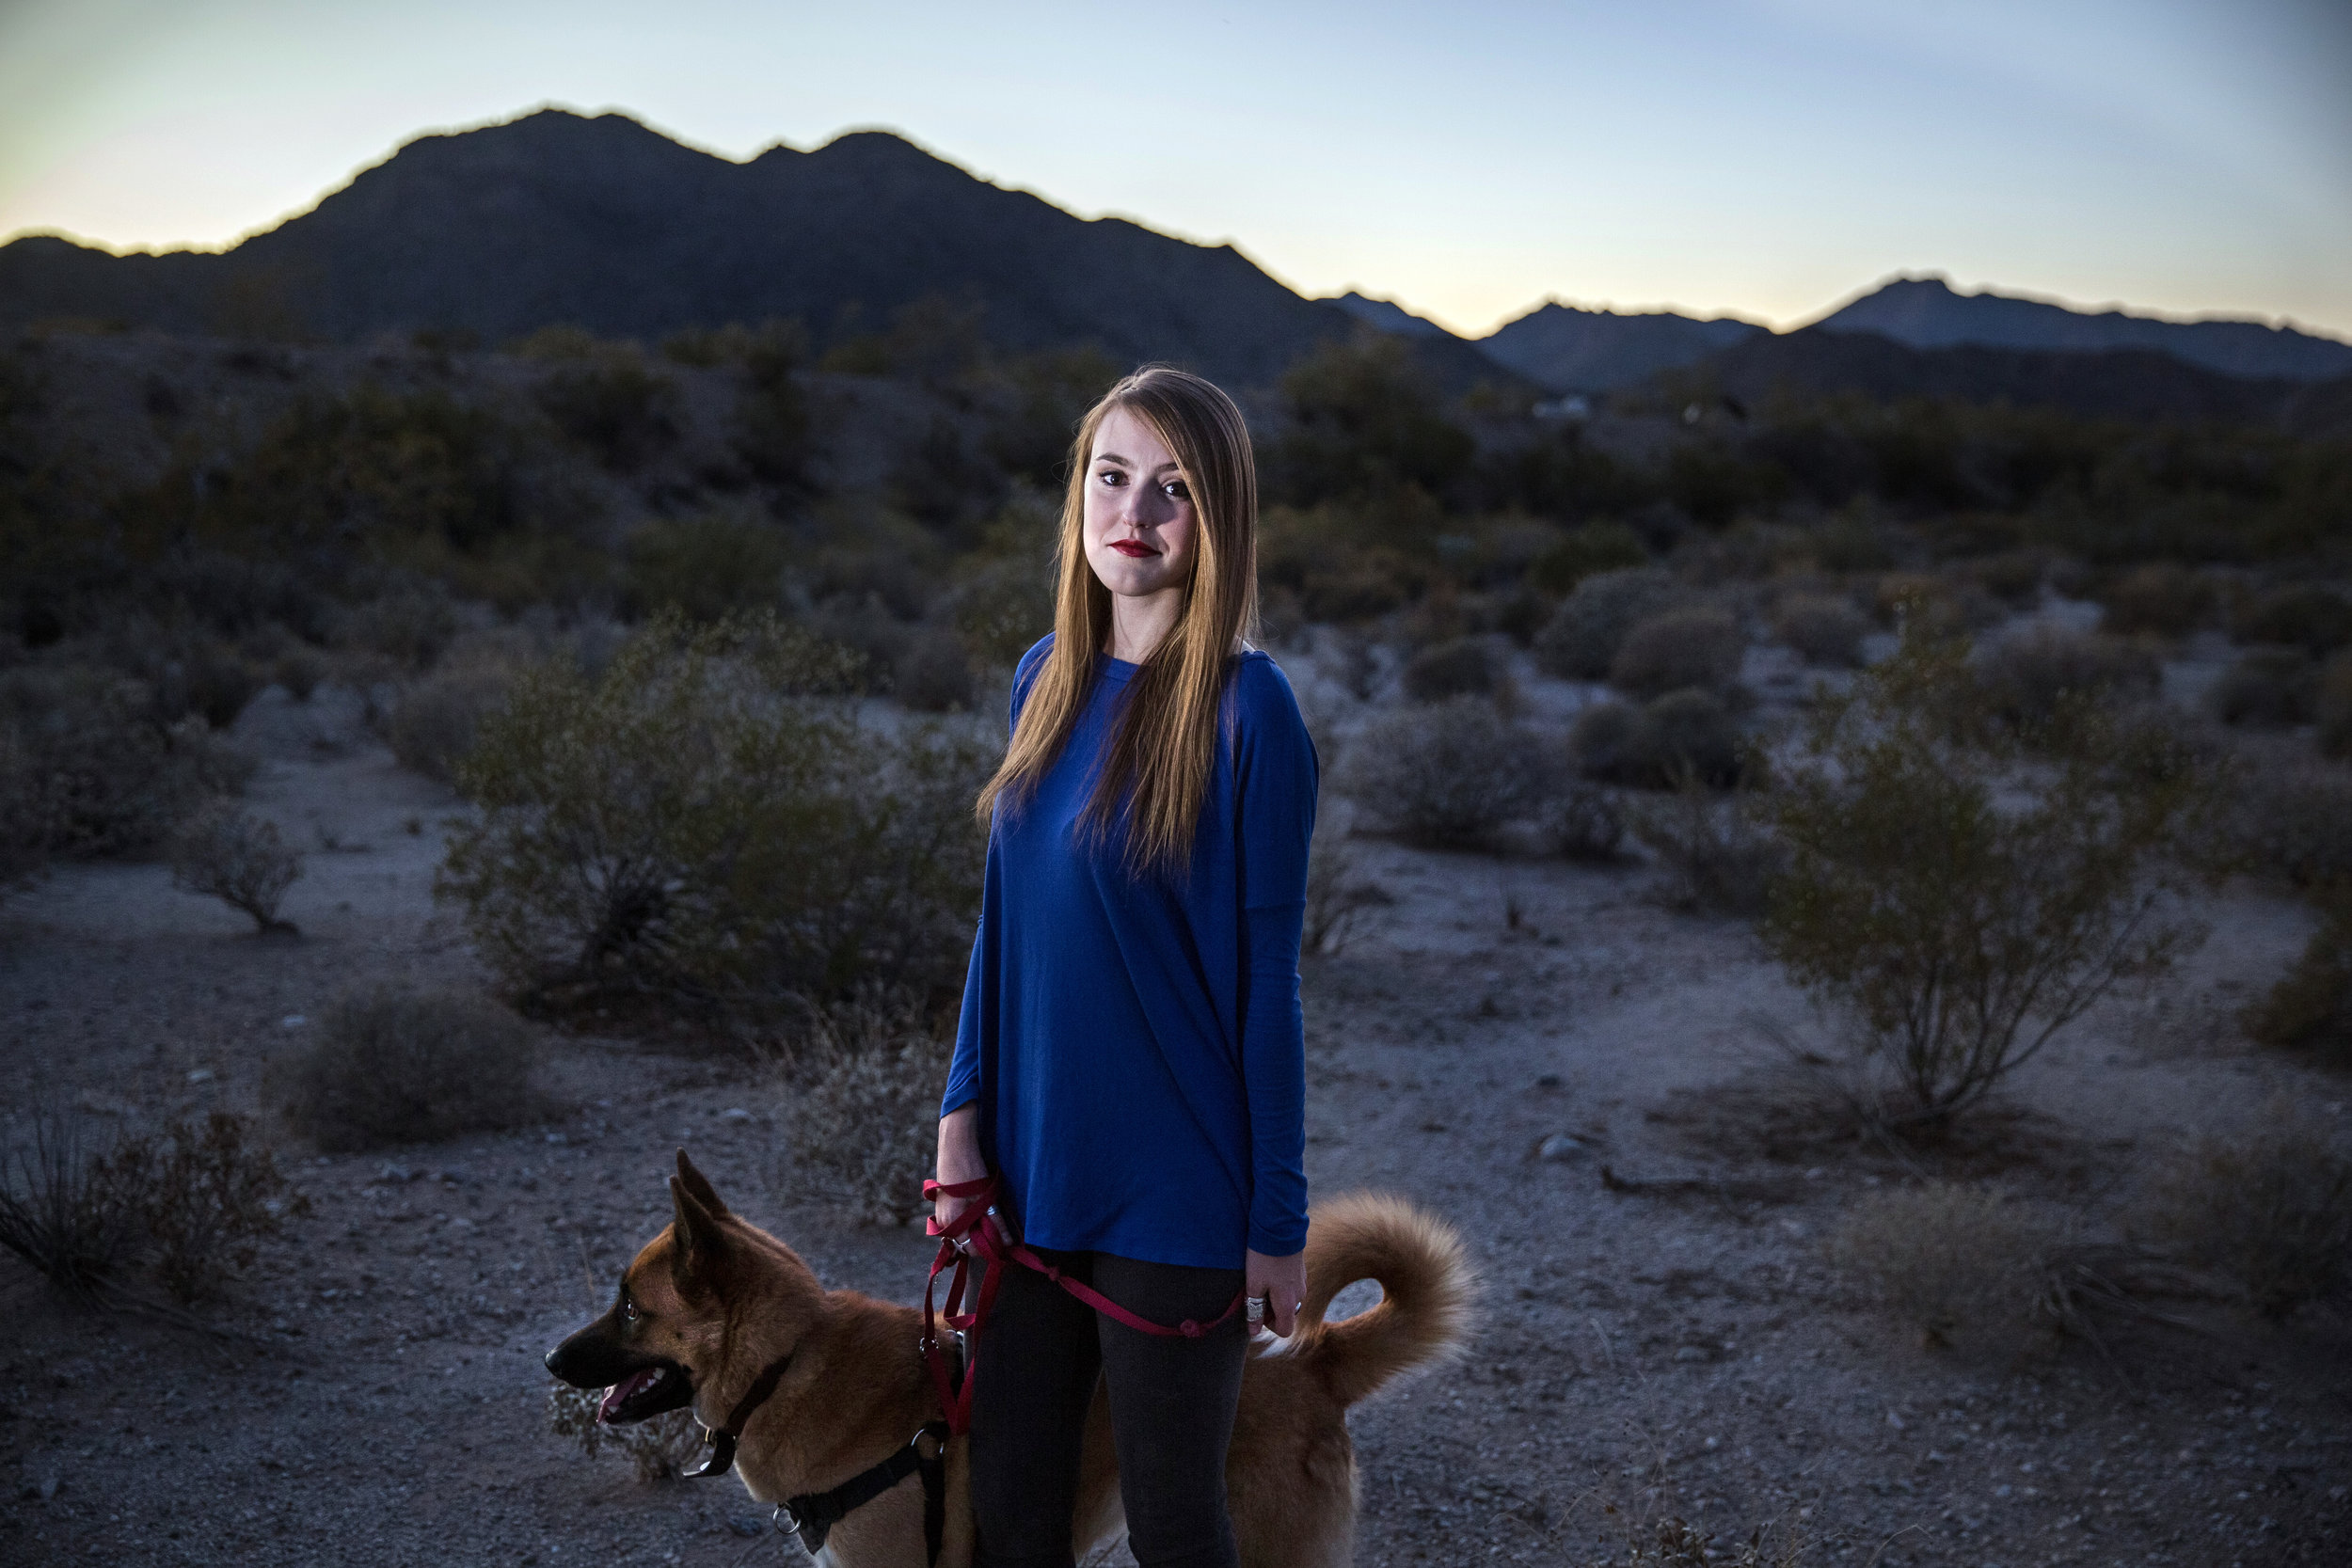 "Kristina Erickson, 23, walks her dog Atticus outside of Phoenix, AZ where she is a school teacher. She graduated in 2013 from Beloit College in Wisconsin. While she was there, in her senior year, a man she didn't know grabbed her in the crotch at a party in a public setting (basement of a fraternity house). She joined with other women in pursuing a sexual misconduct complaint through the college disciplinary process. She was raped at an earlier point in her career at Beloit in a dorm room by someone who thought her repeated ""no"" and ""stop"" was a joke. She does not want to identify that person, and she never reported it to police or the college. She wrote about her experiences in an essay for the college student newspaper."